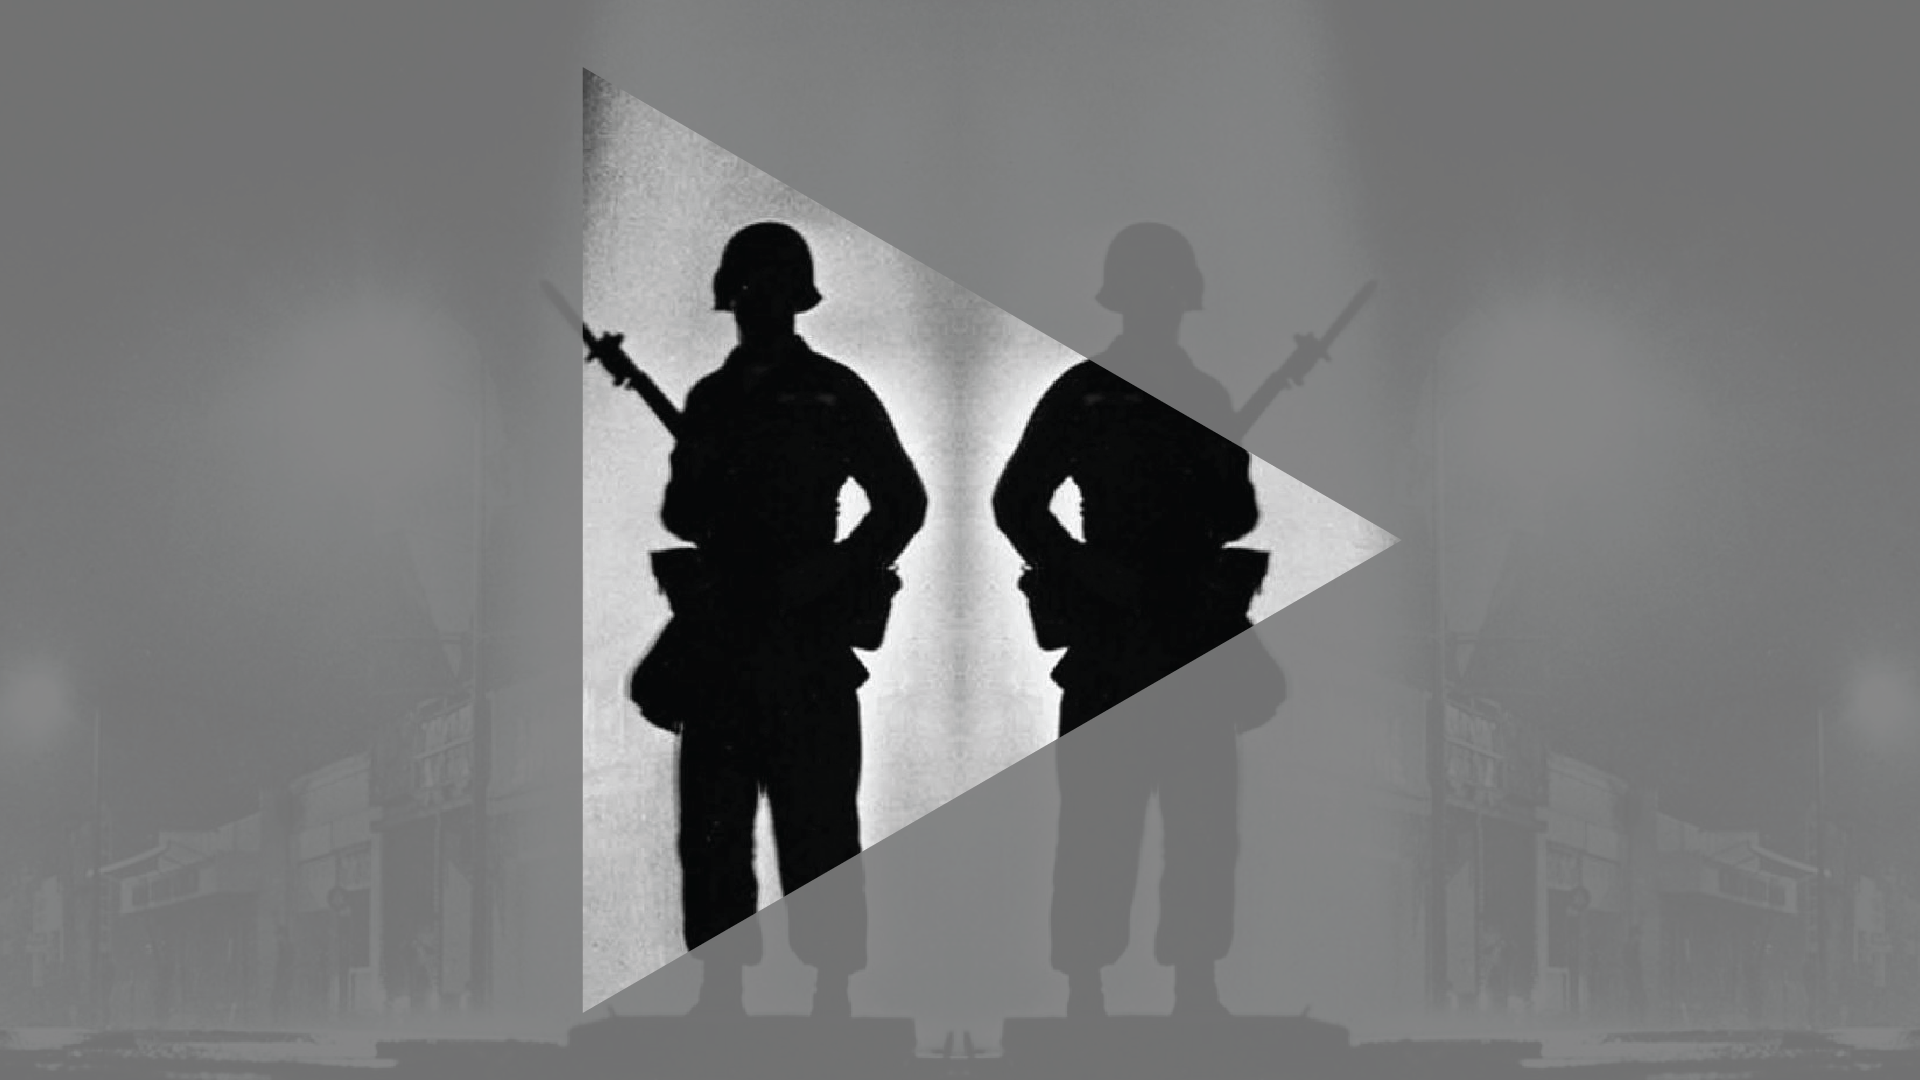 black and white image of silhouetted figures of soldiers with guns with overlaying triangle cutout